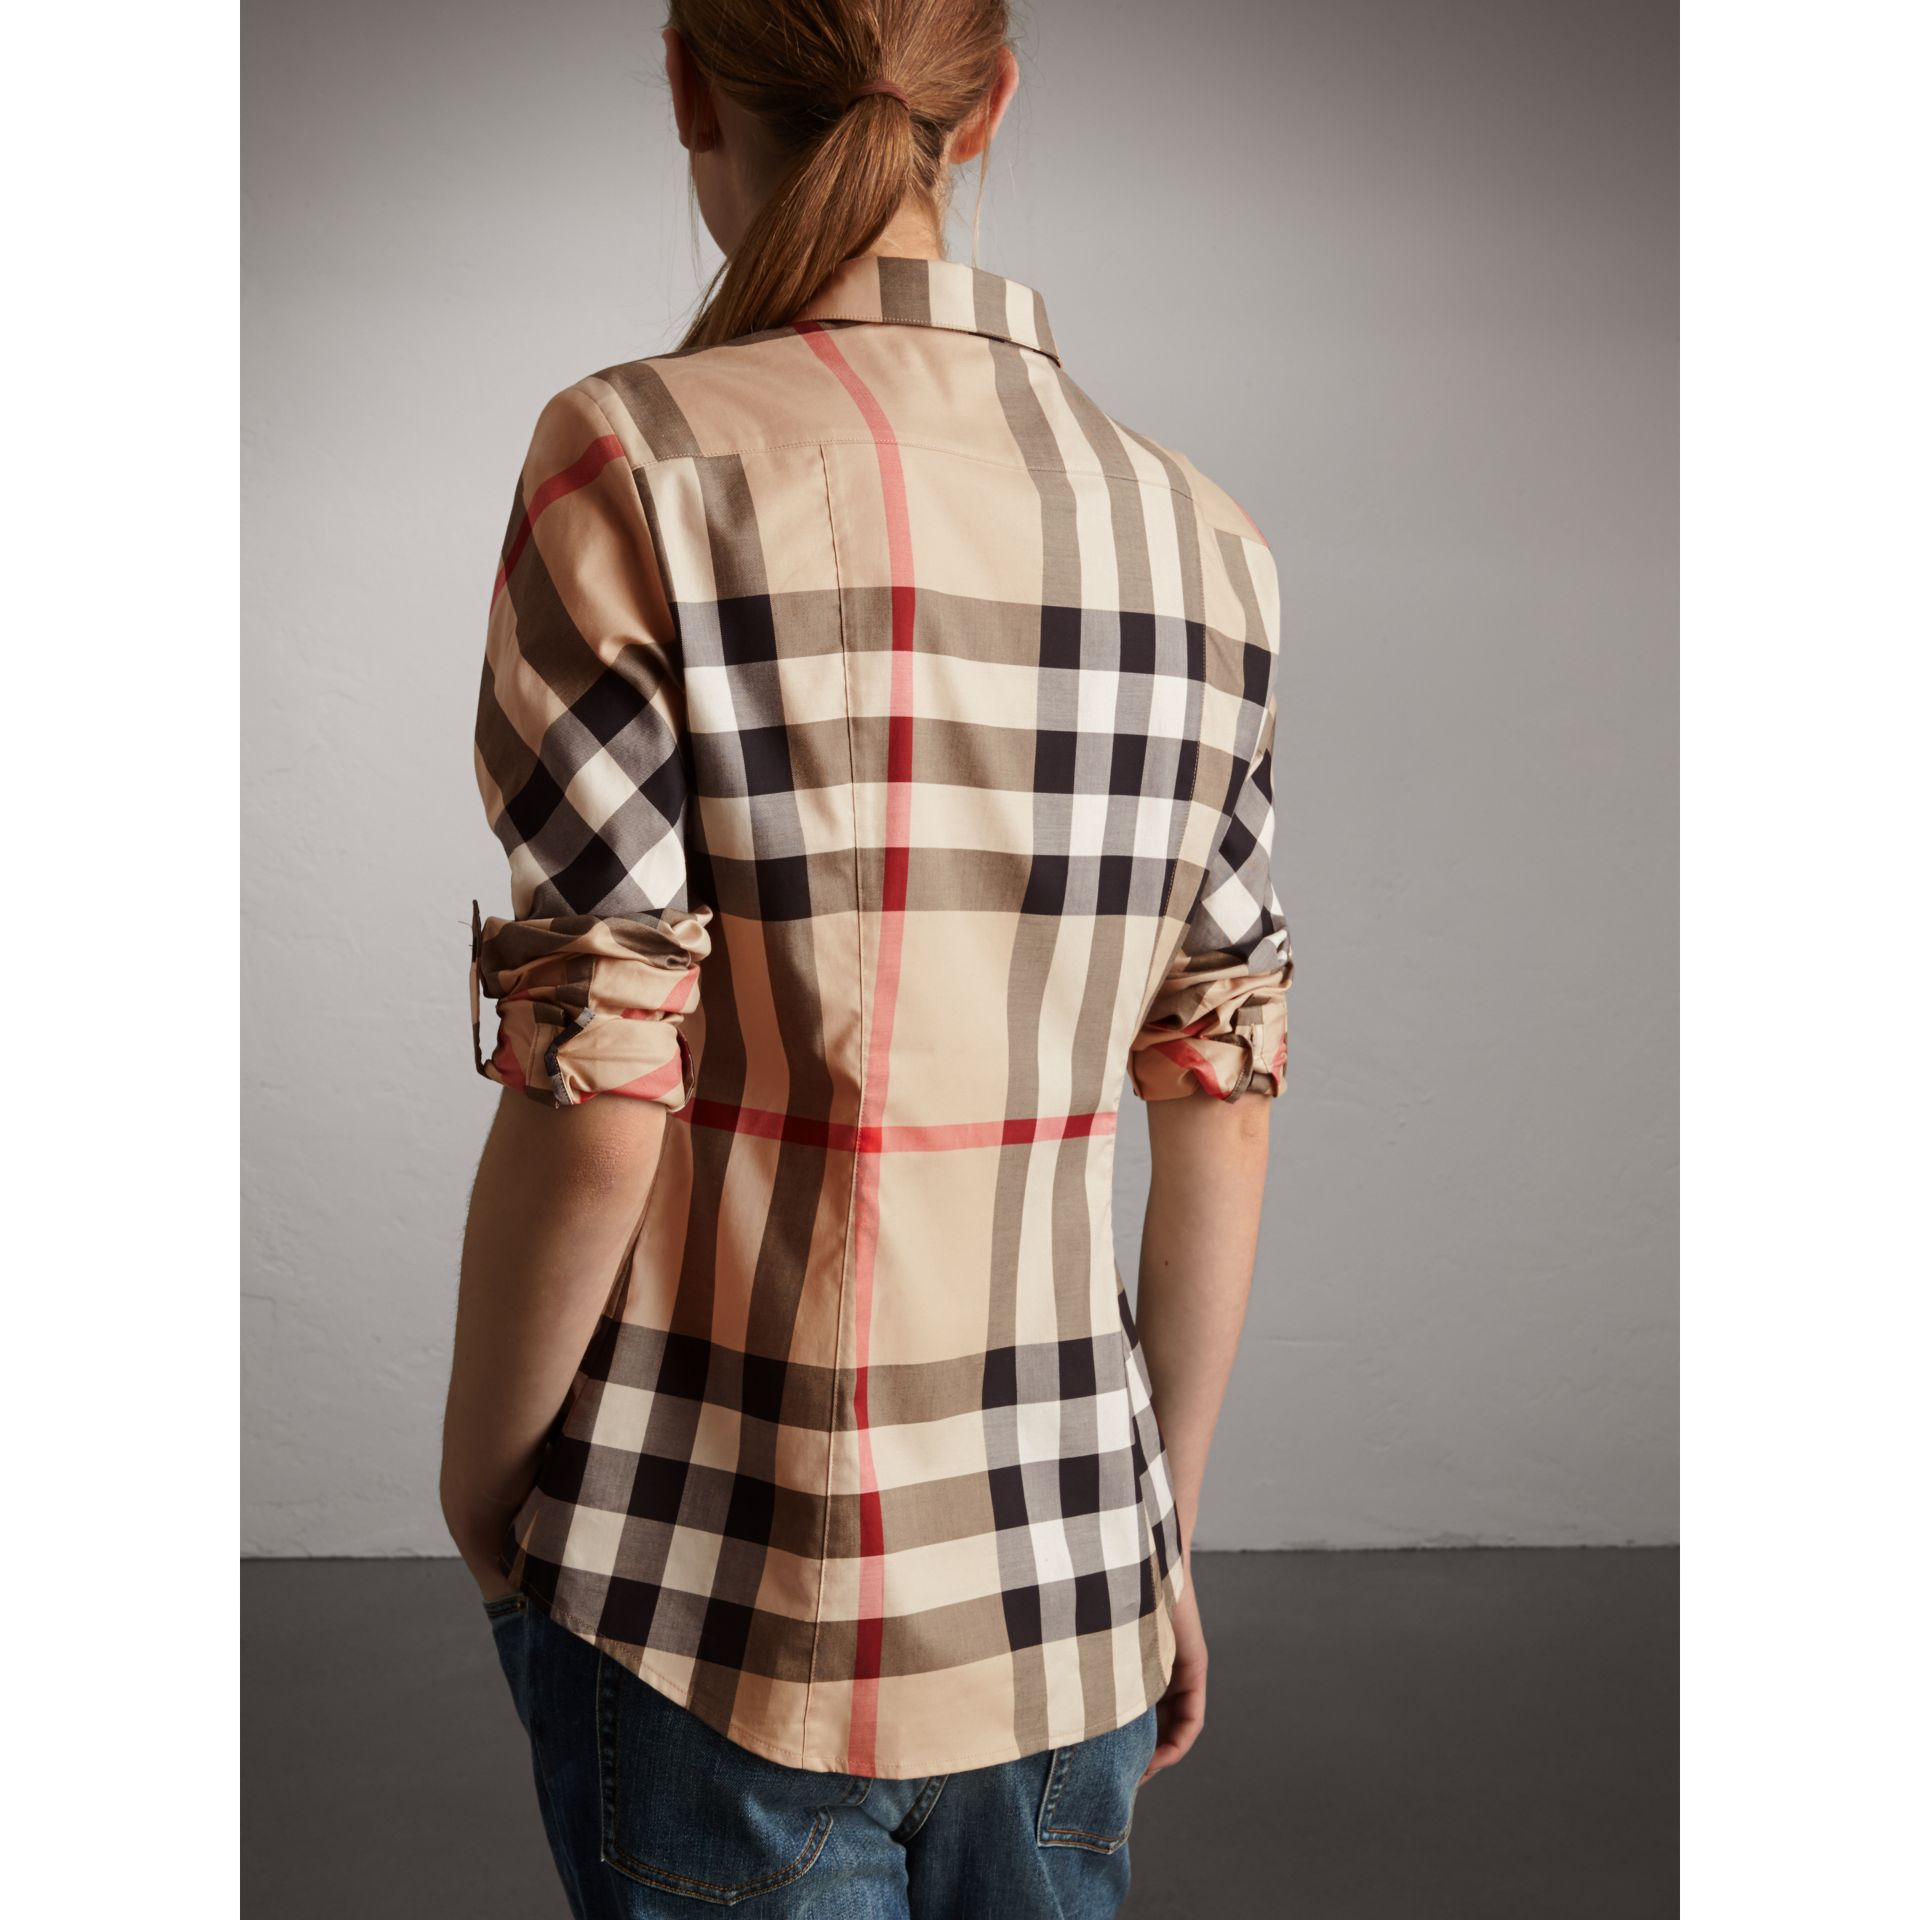 Bluse aus Stretchbaumwolle in Check (New Classic) - Damen | Burberry - Galerie-Bild 3